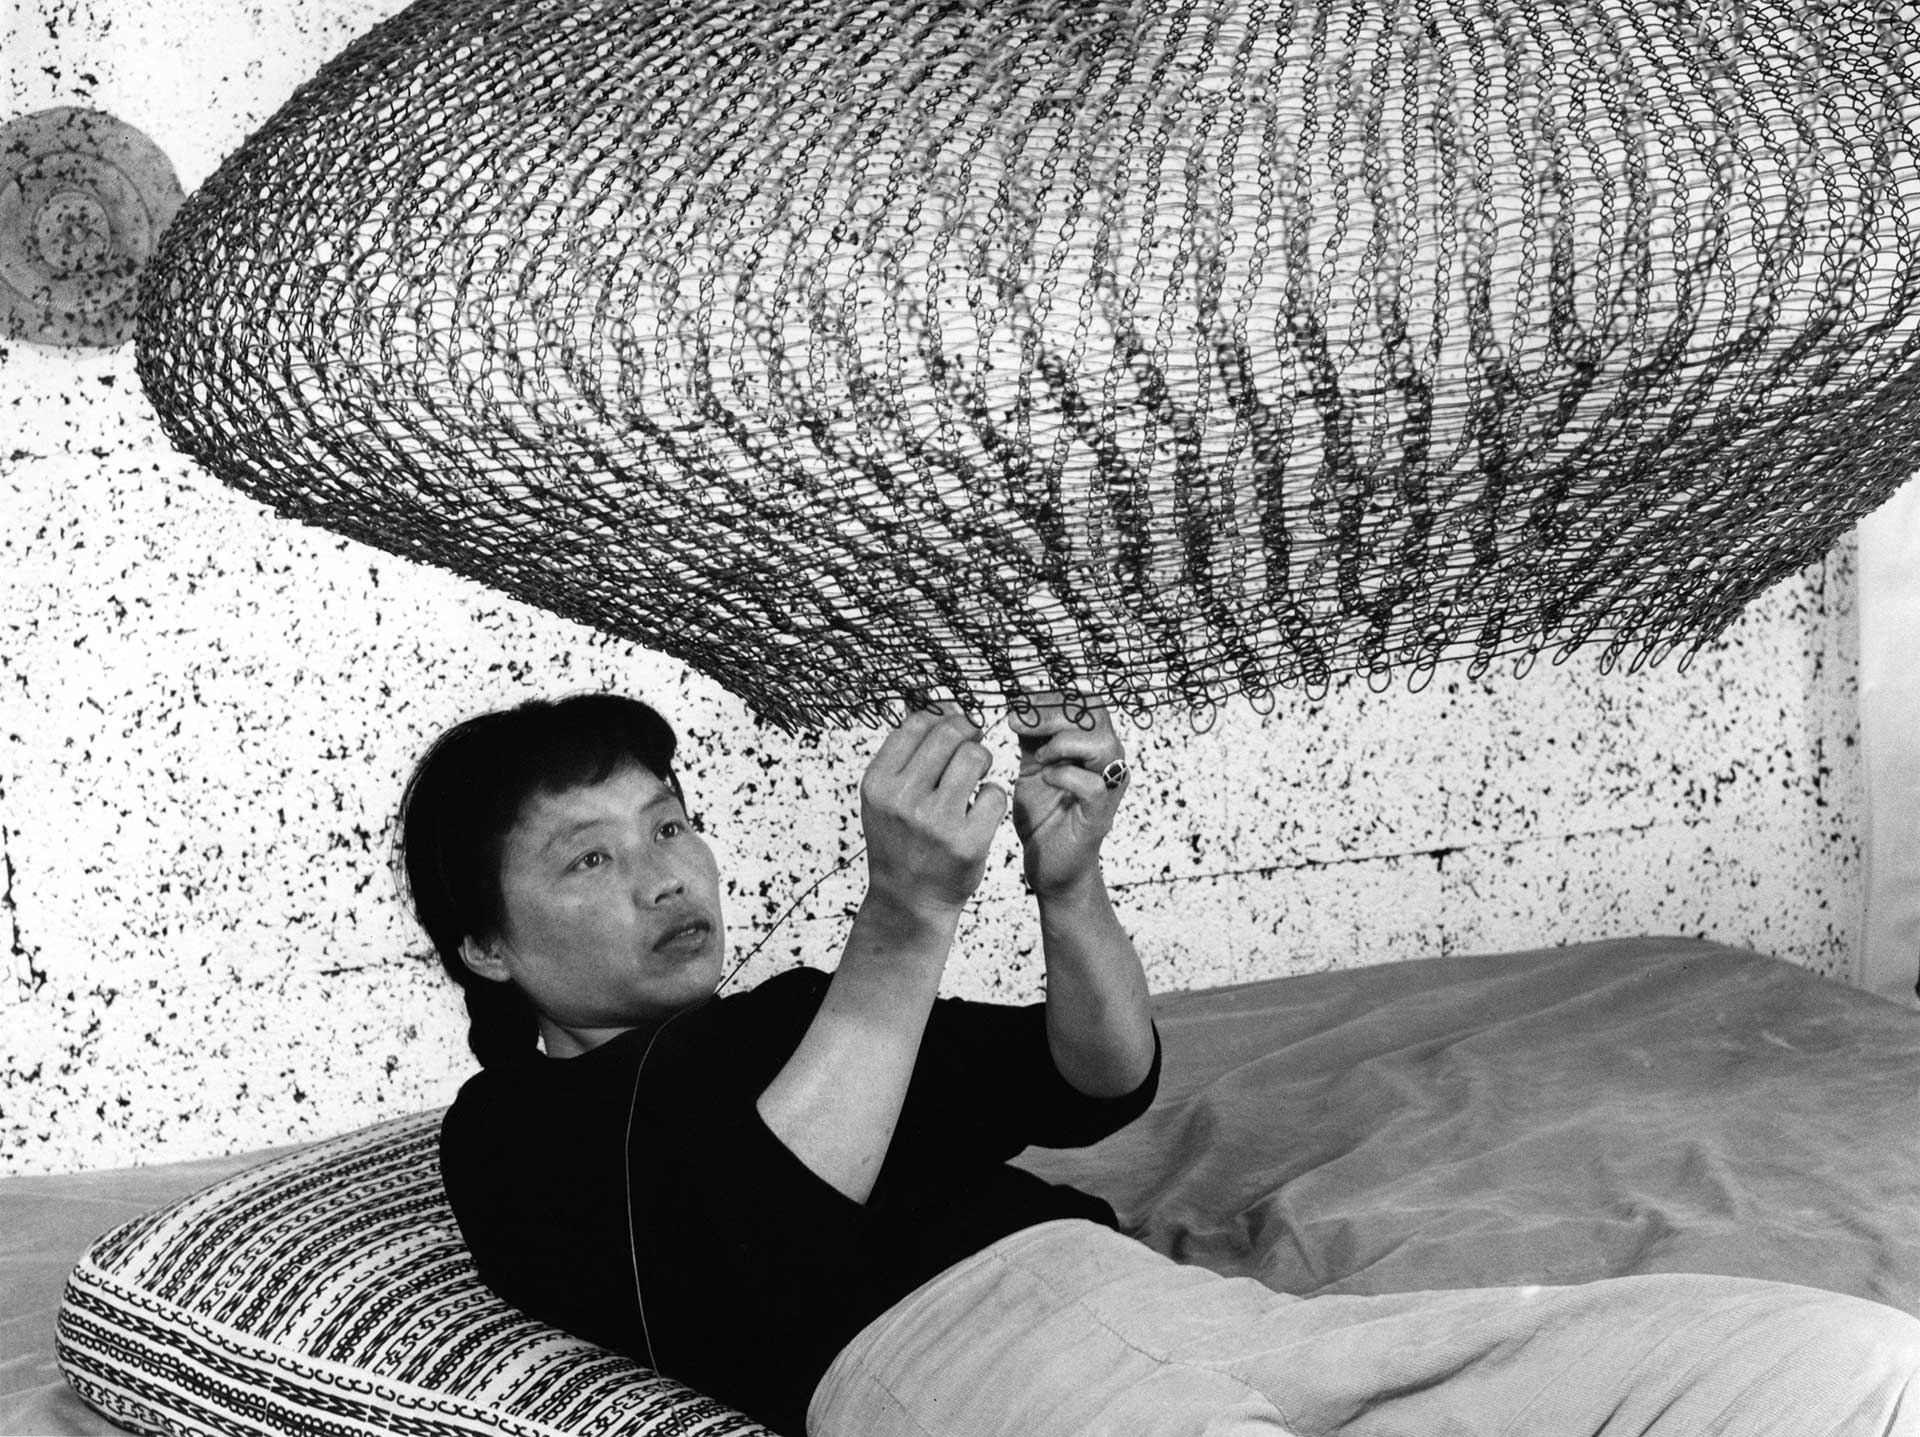 A photograph of Ruth Asawa by Imogen Cunningham, dated 1957.